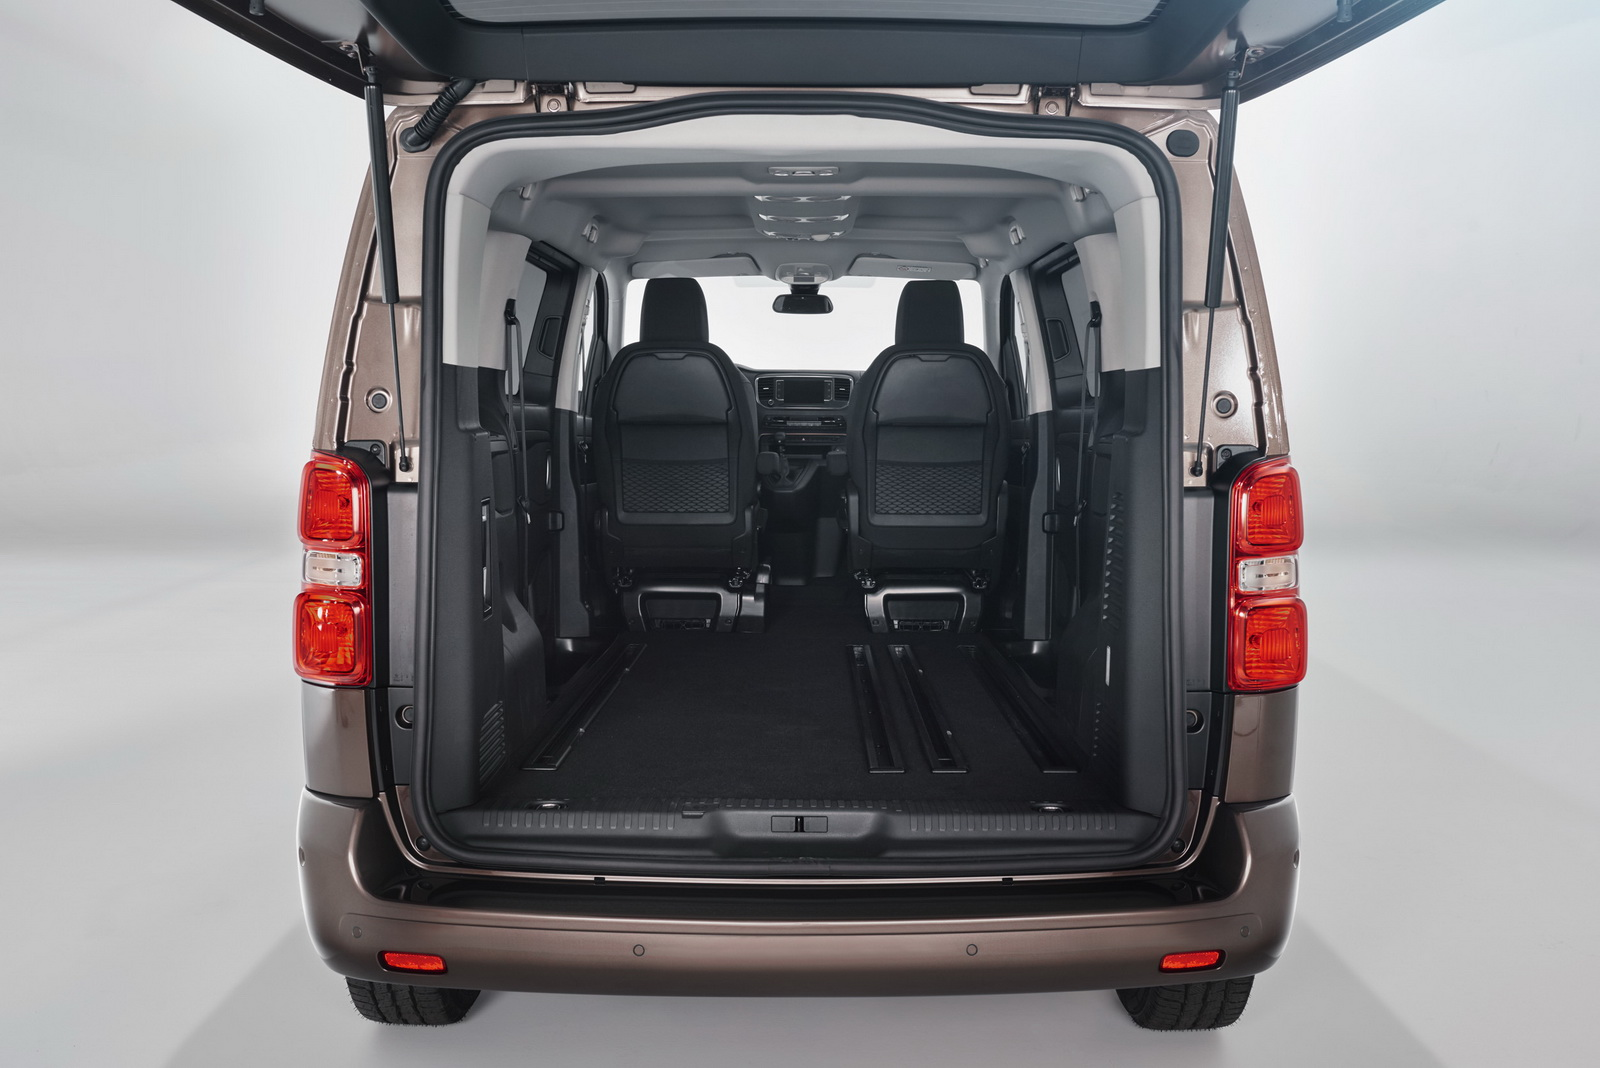 yeni toyota proace verso oto kokpit. Black Bedroom Furniture Sets. Home Design Ideas